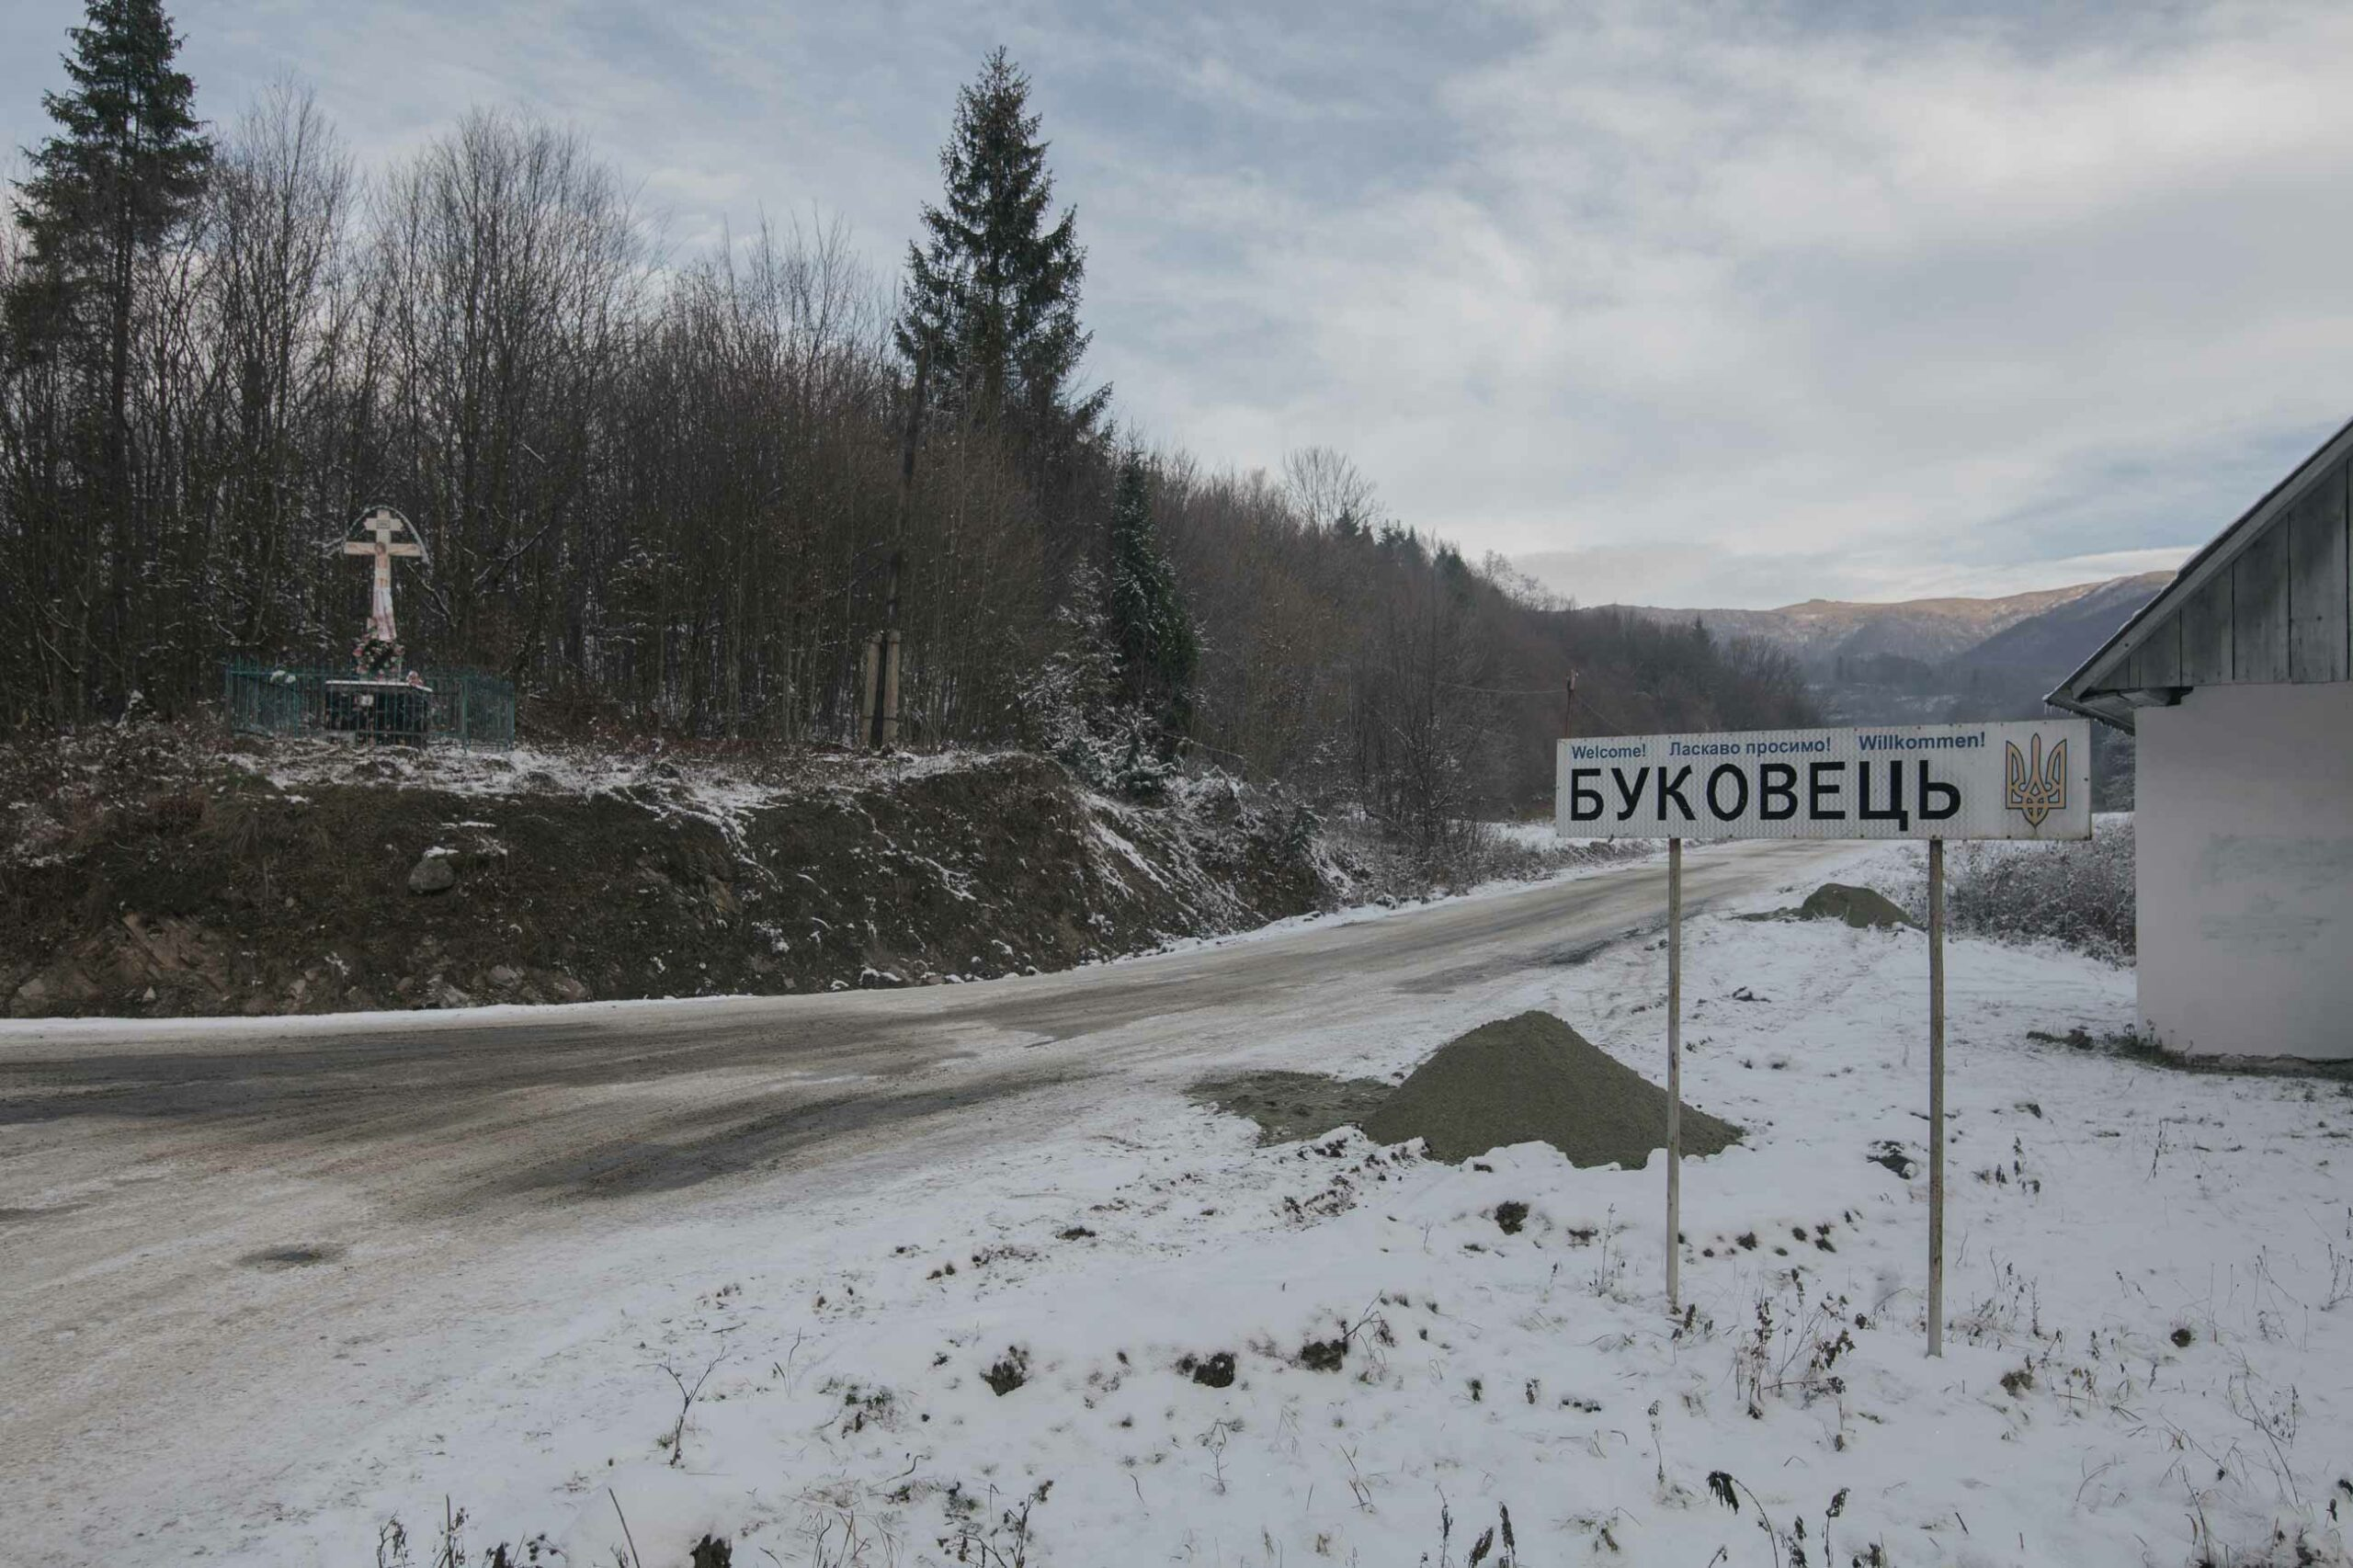 z bukovets 20 2600 web scaled - <b>Gas production began in a tourist village in Transcarpathia without permits.</b> Locals are protesting but to no avail. - Заборона